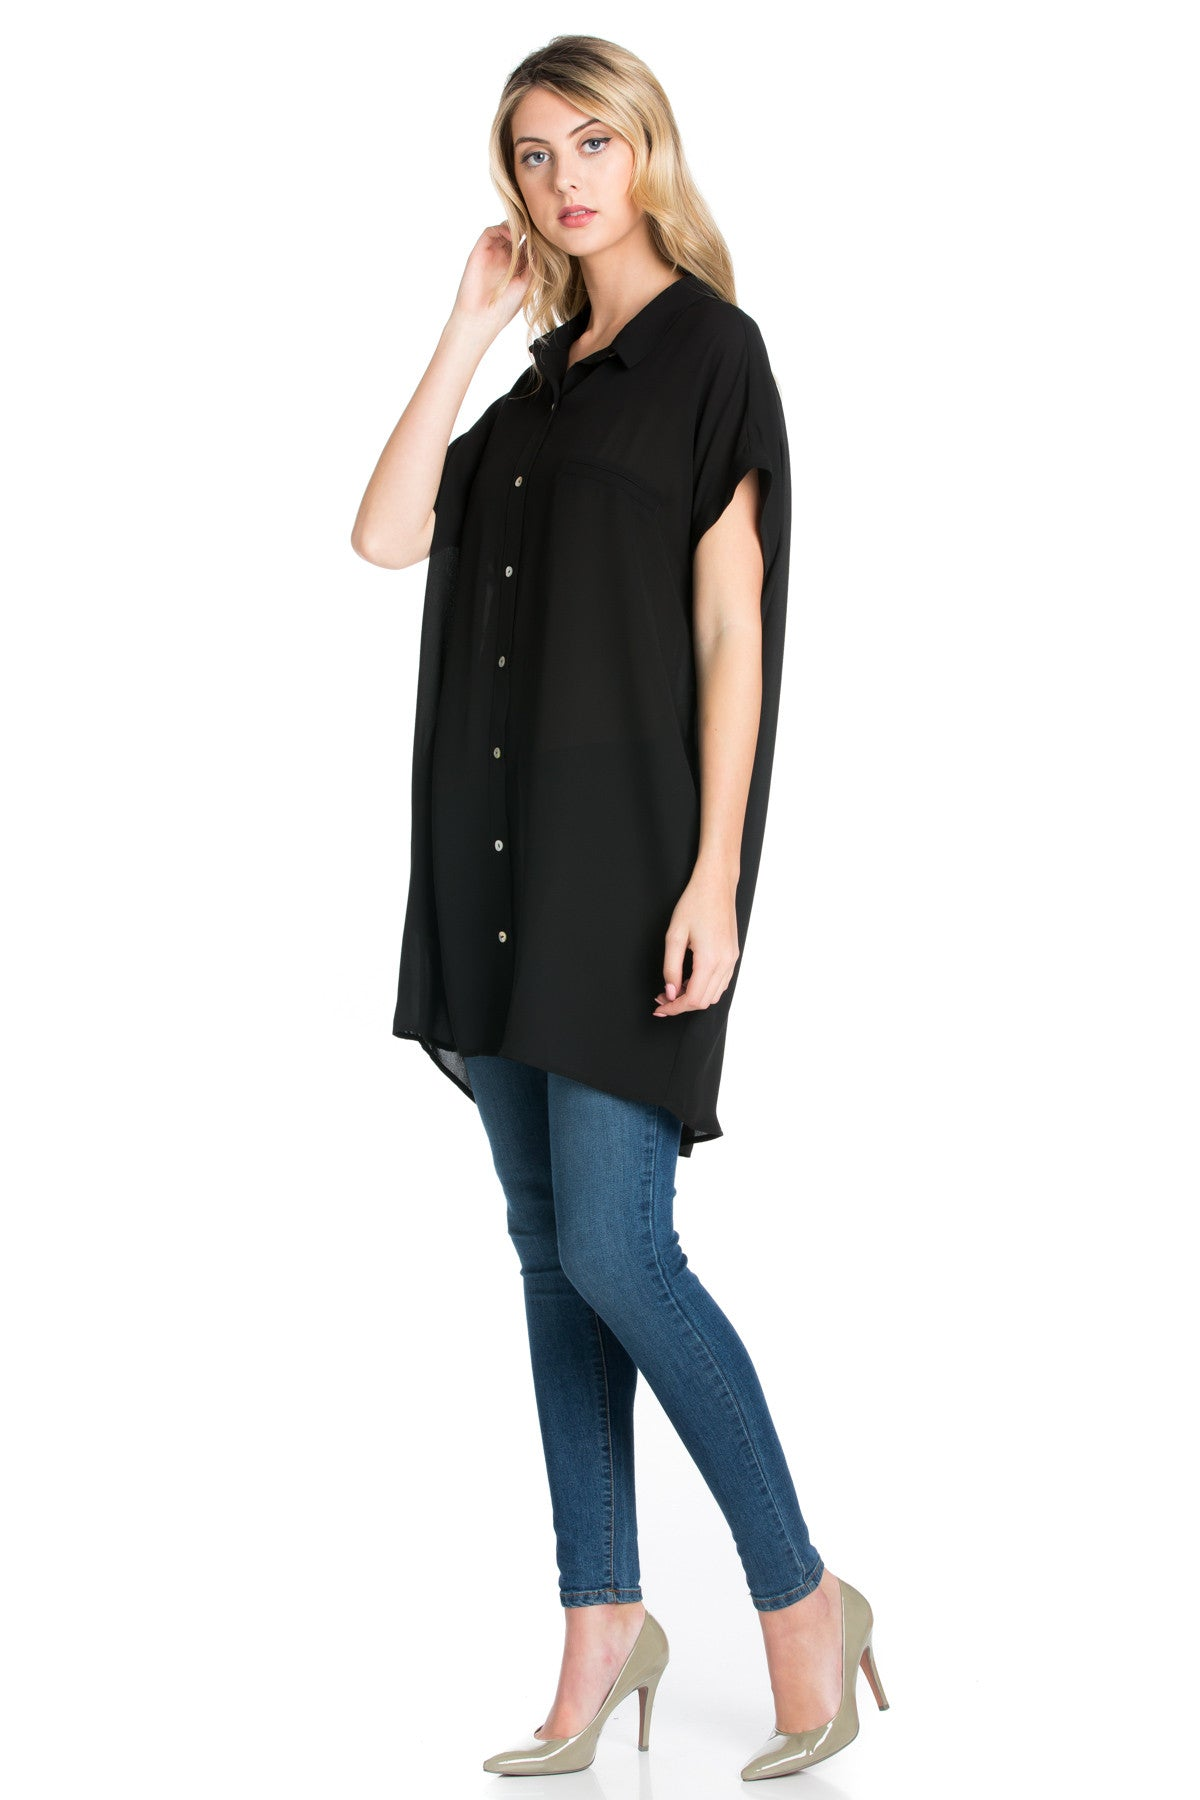 Short Sleeve Longline Button Down Chiffon Top in Midnight Blue - Tops - My Yuccie - 4